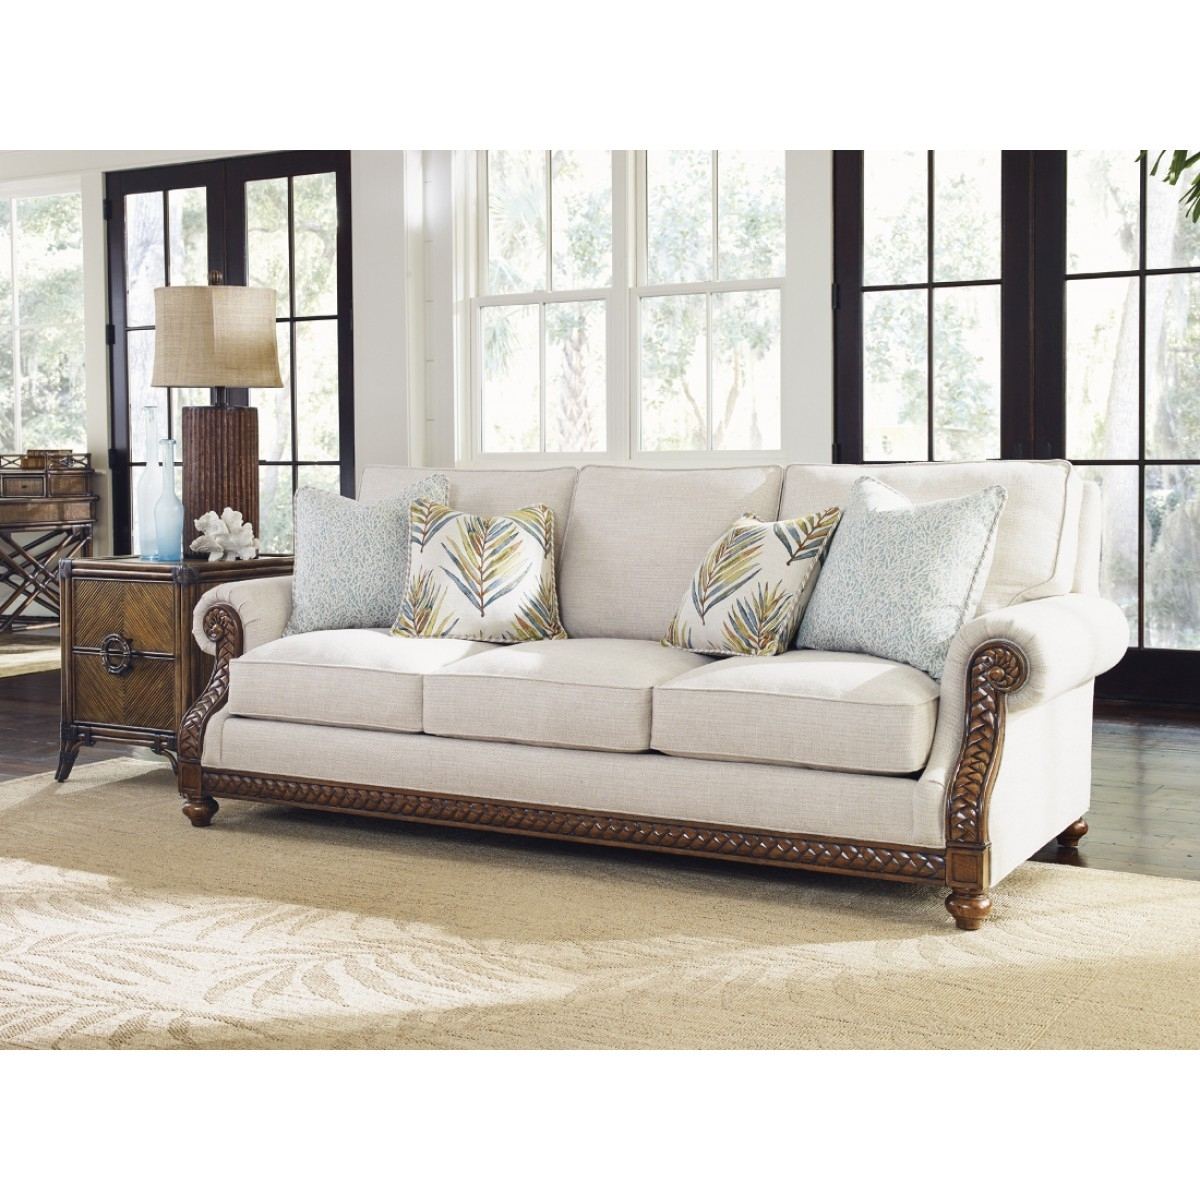 Tommy Bahama Home Bali Hai Shoreline Sofa With Regard To Marcus Oyster 6 Piece Sectionals With Power Headrest And Usb (View 13 of 25)